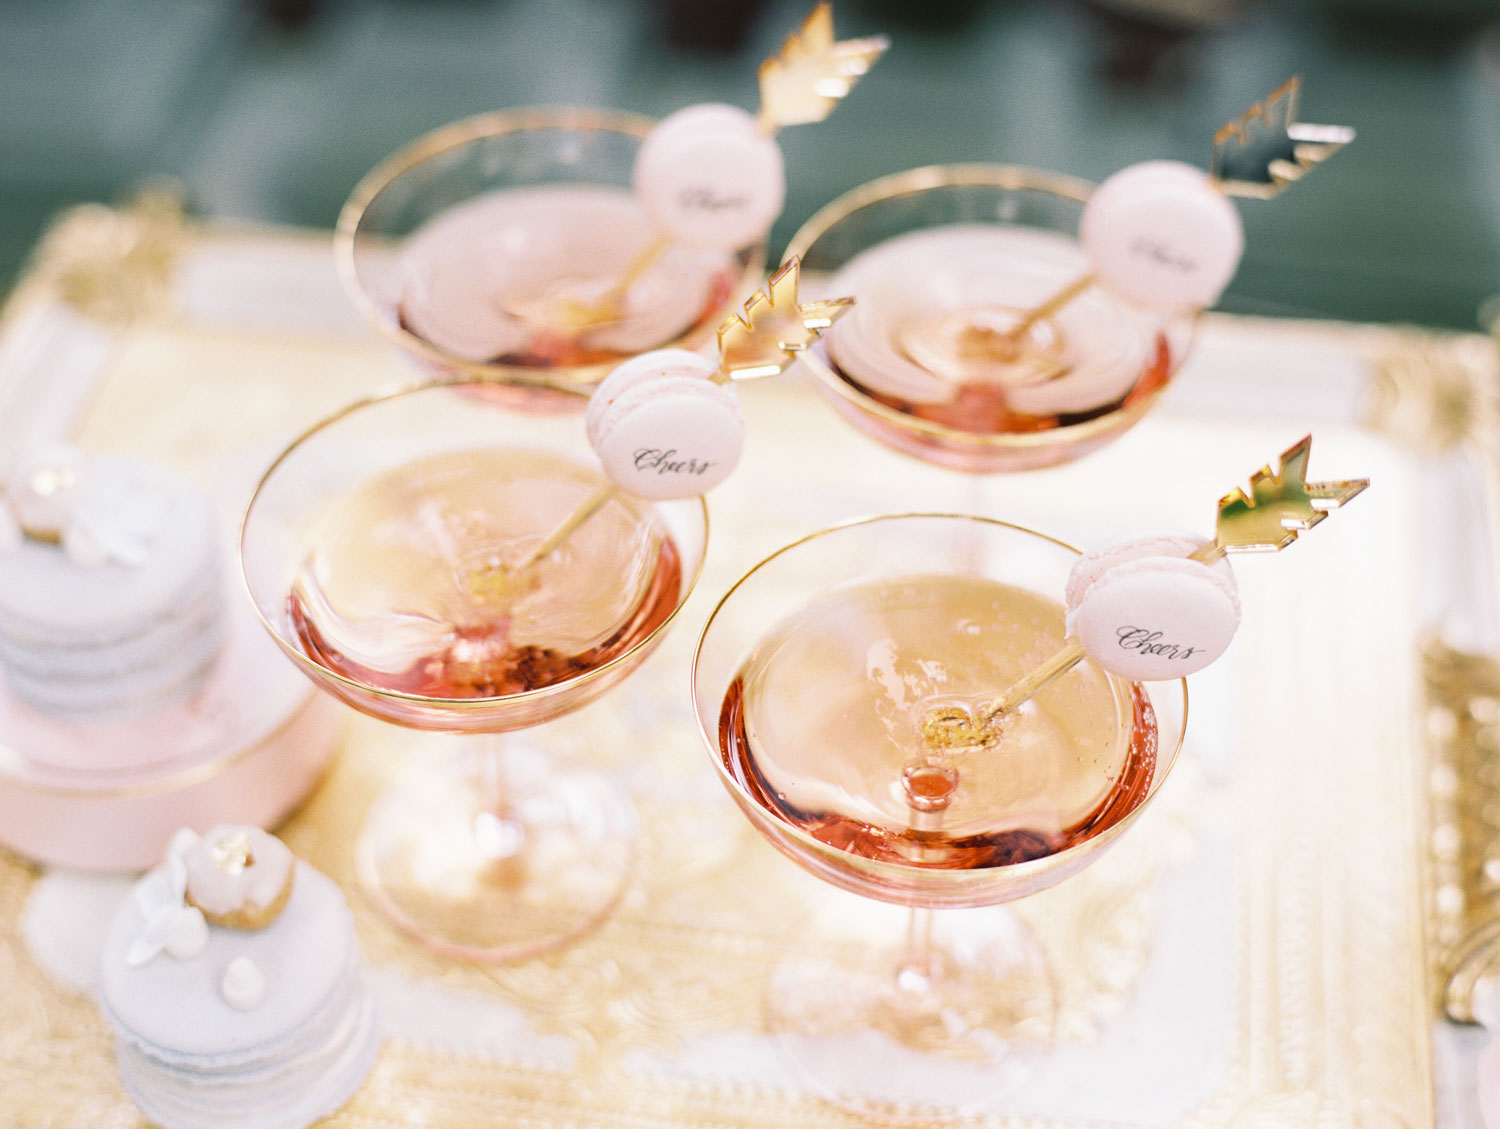 Coupe glasses with pink cocktails and macarons arrows in them garnish